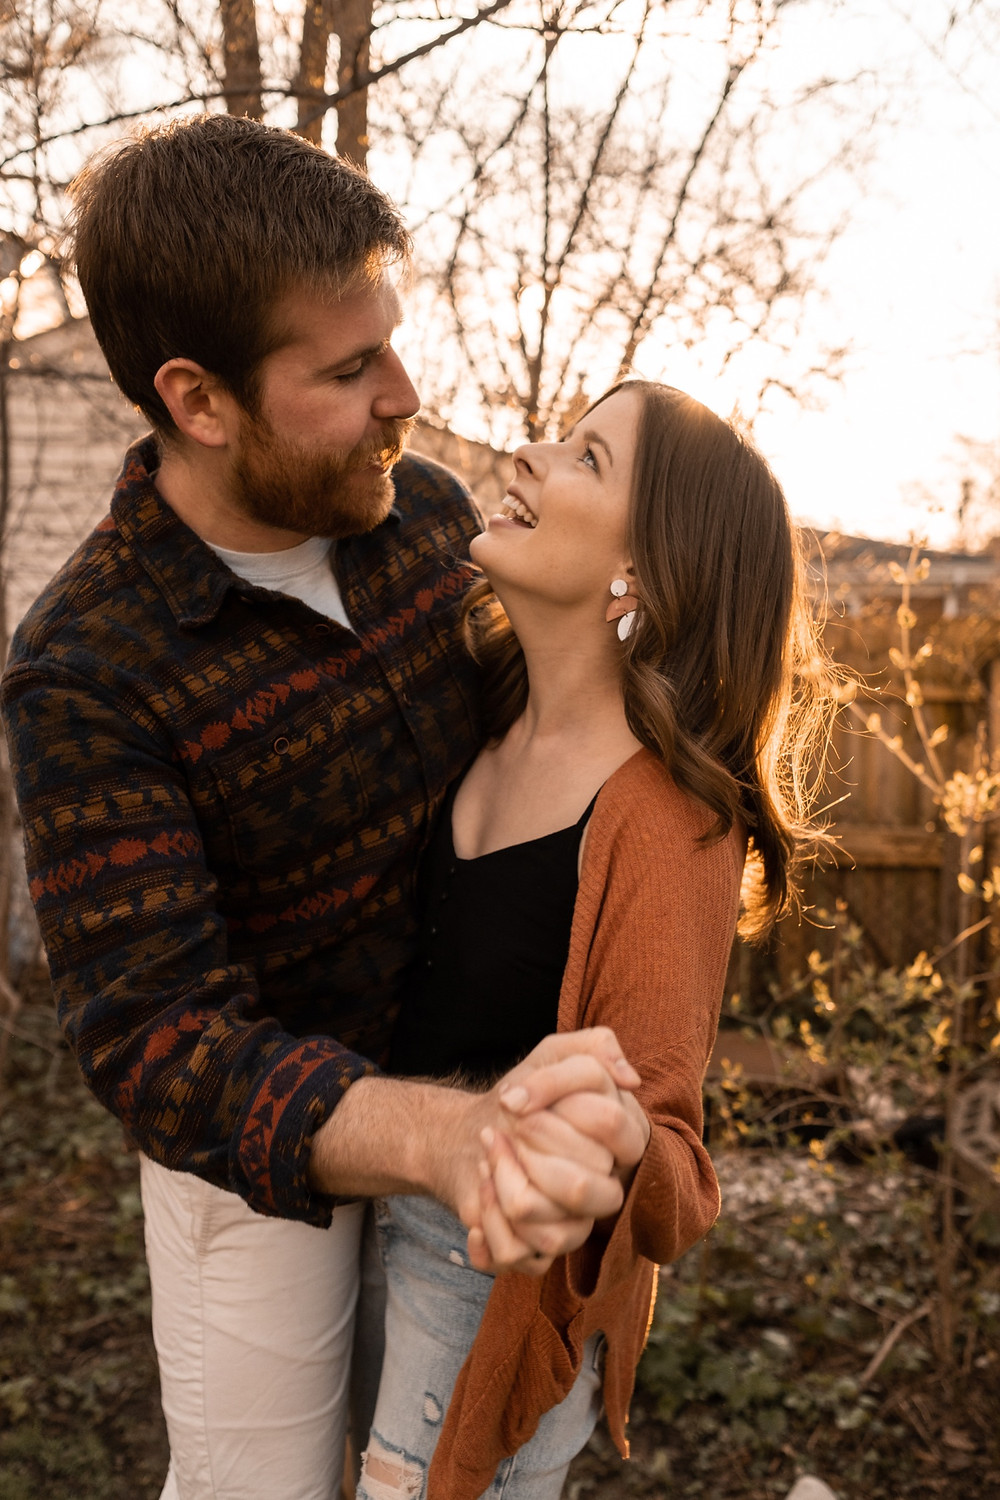 Couple dancing in backyard for photos. Photographed by Nicole Leanne Photography.